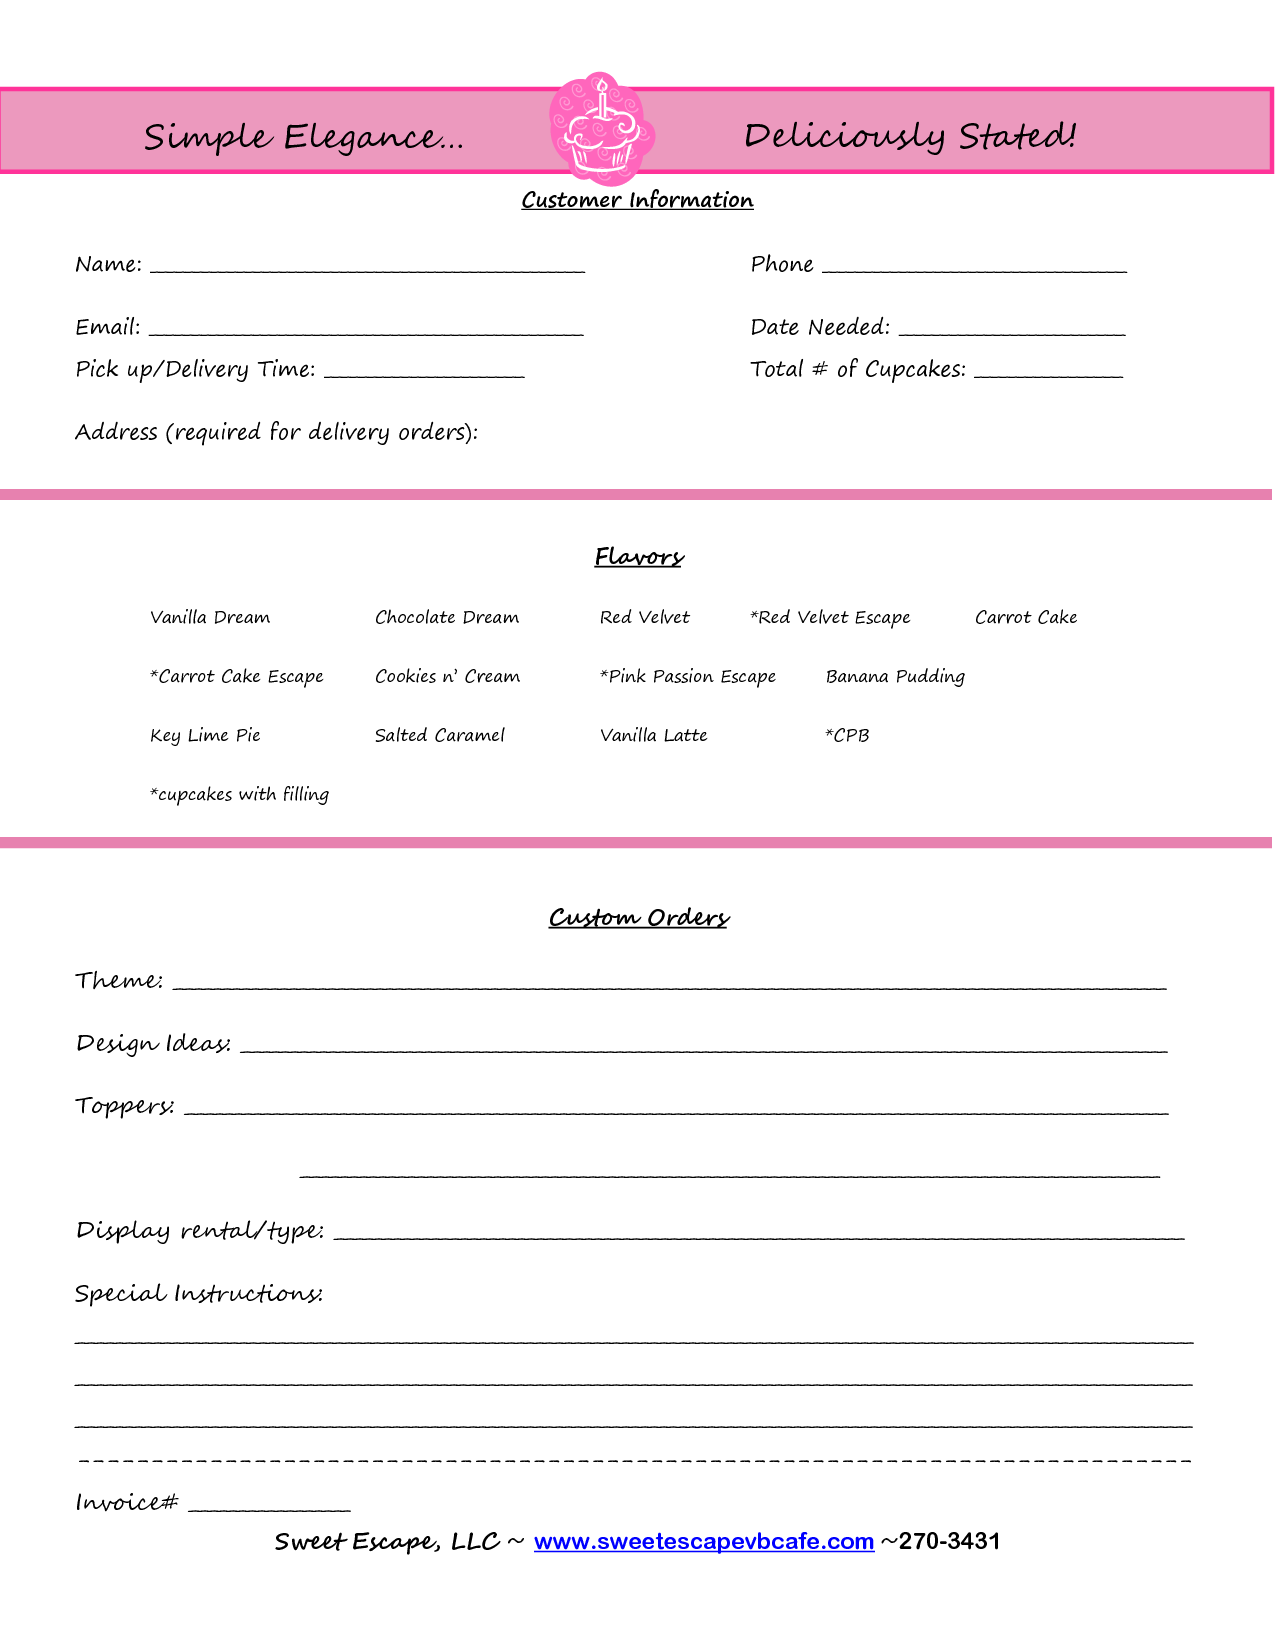 Cake Order Form Templates Free Cupcakes Pinterest – Sample Cake Order Form Template